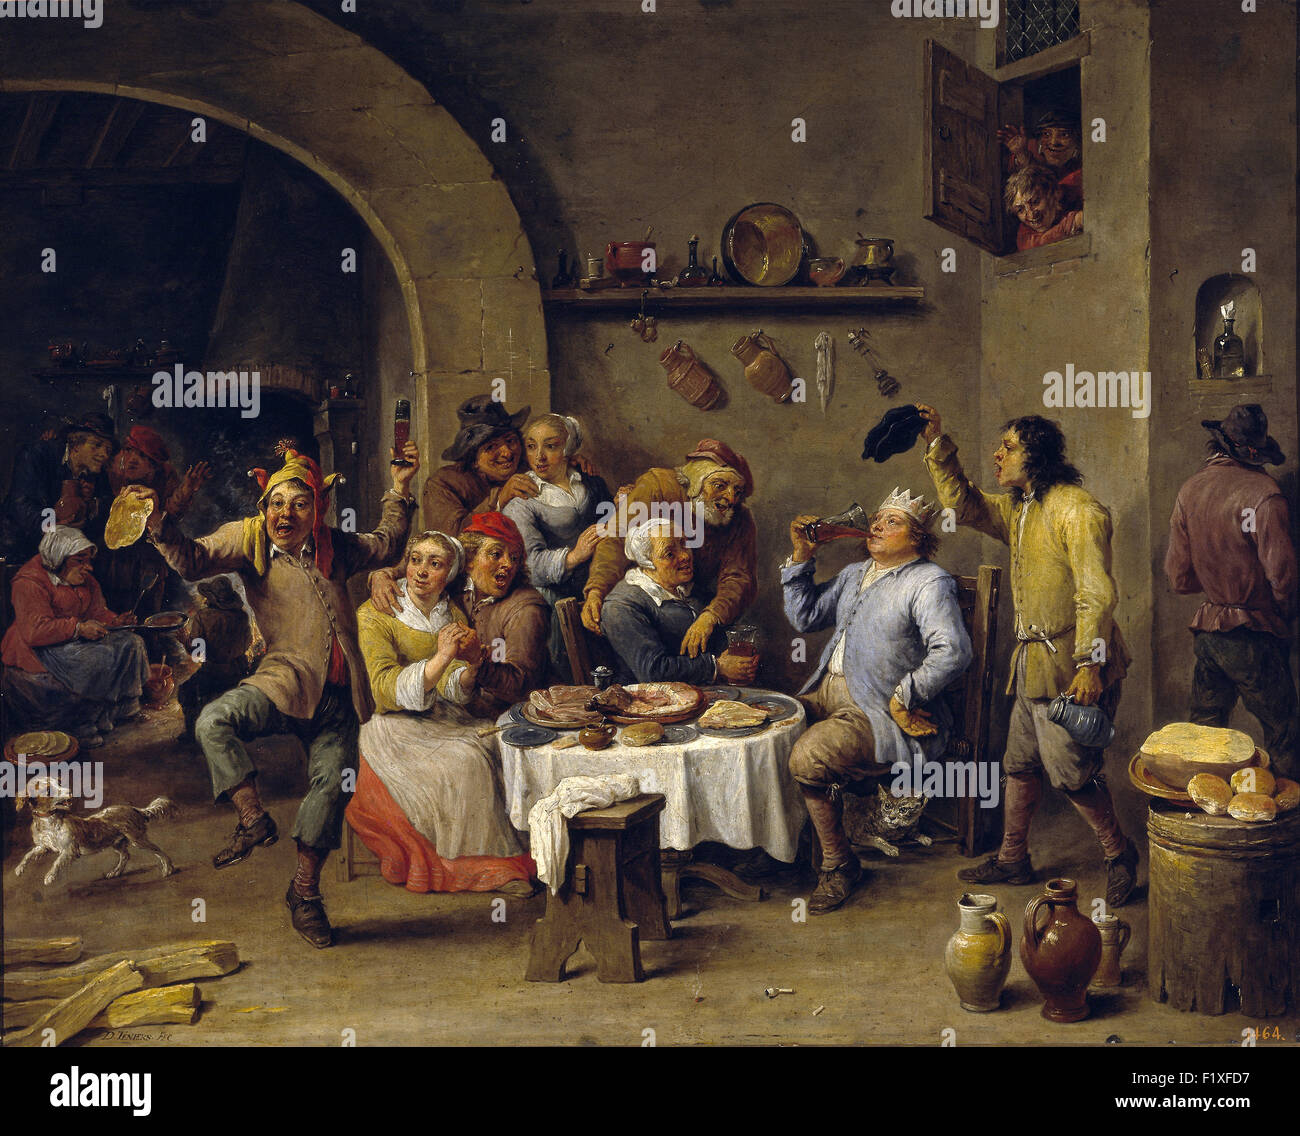 David Teniers the Younger - The King Drinks - Stock Image